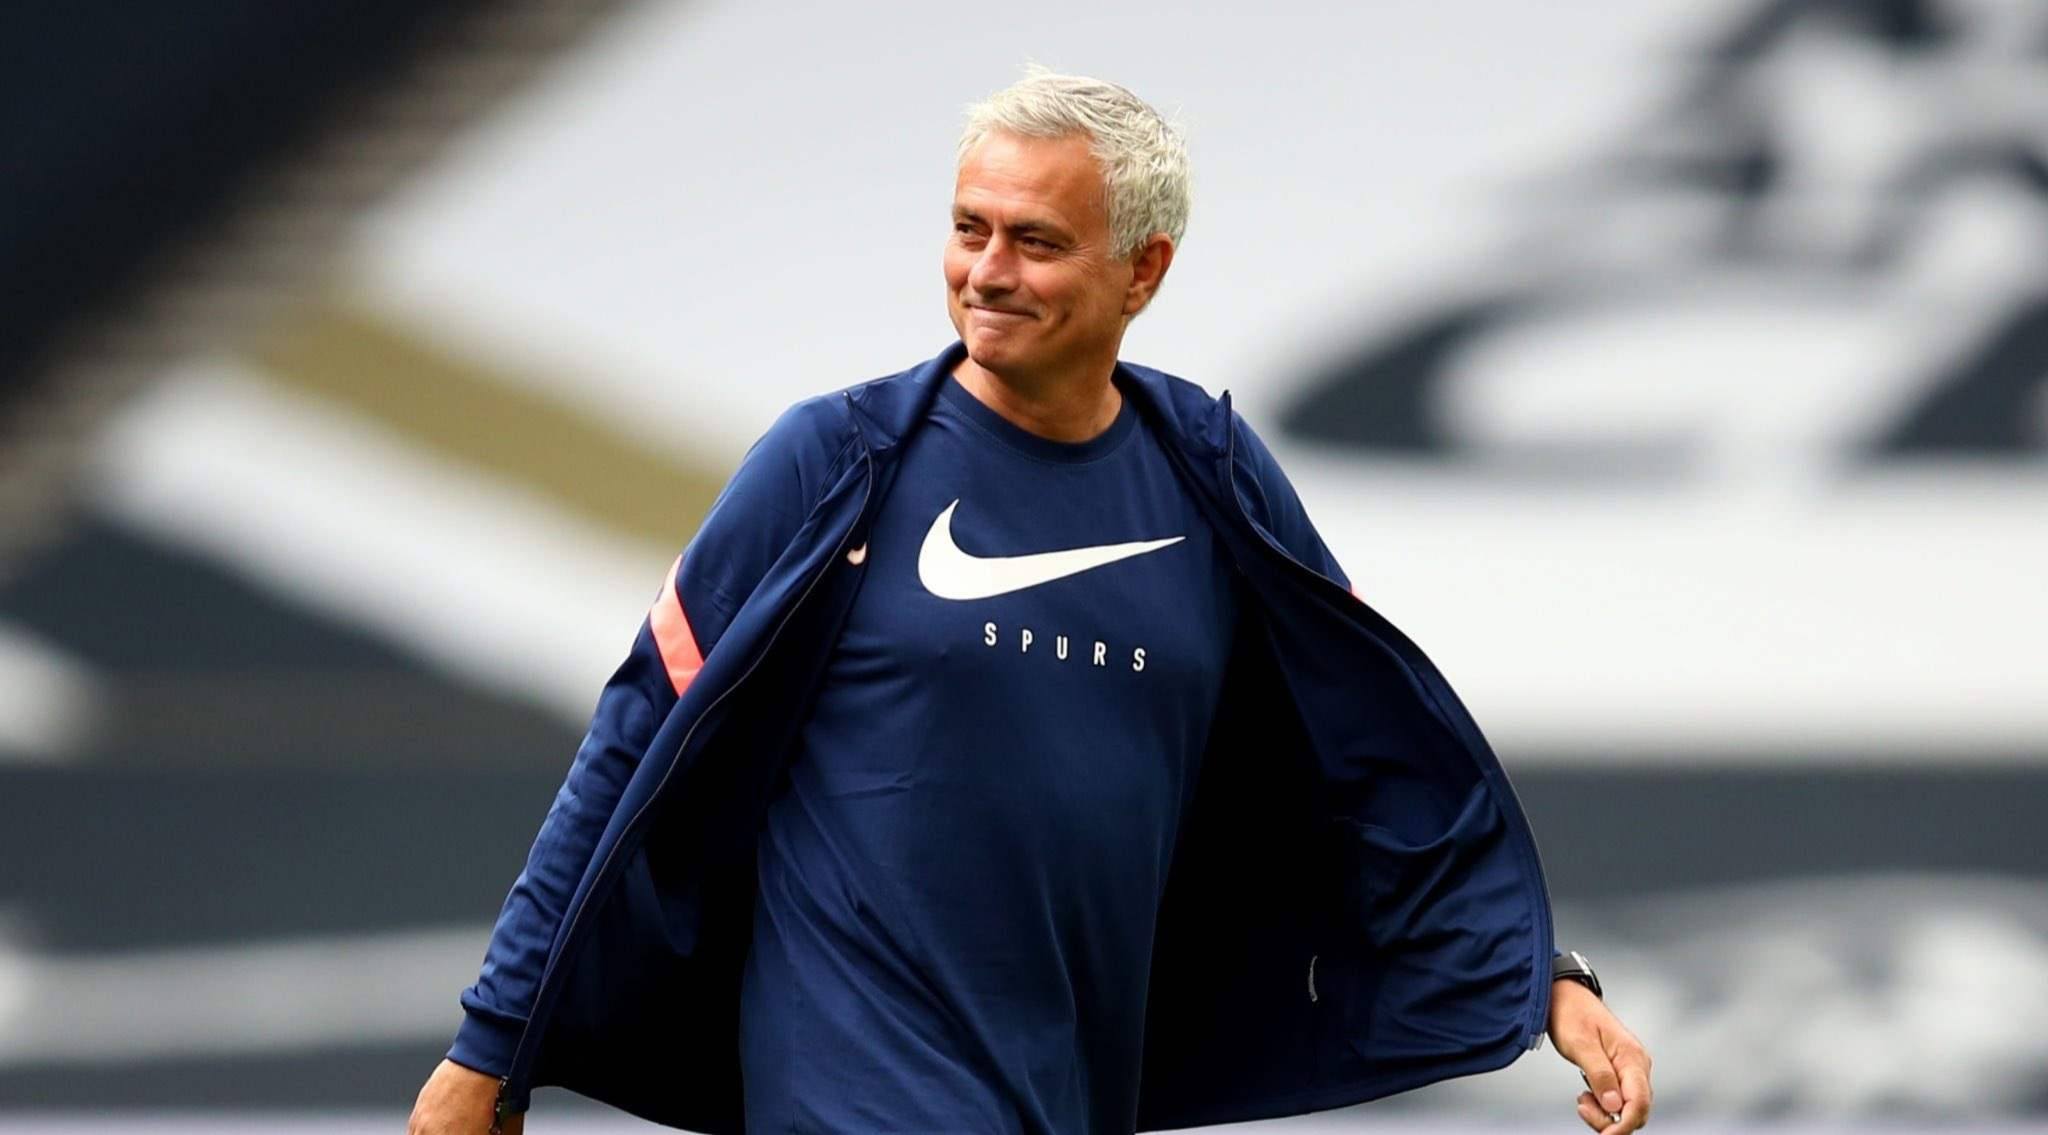 Jose Mourinho thought Chelsea would 's**t themselves' and miss out on top four